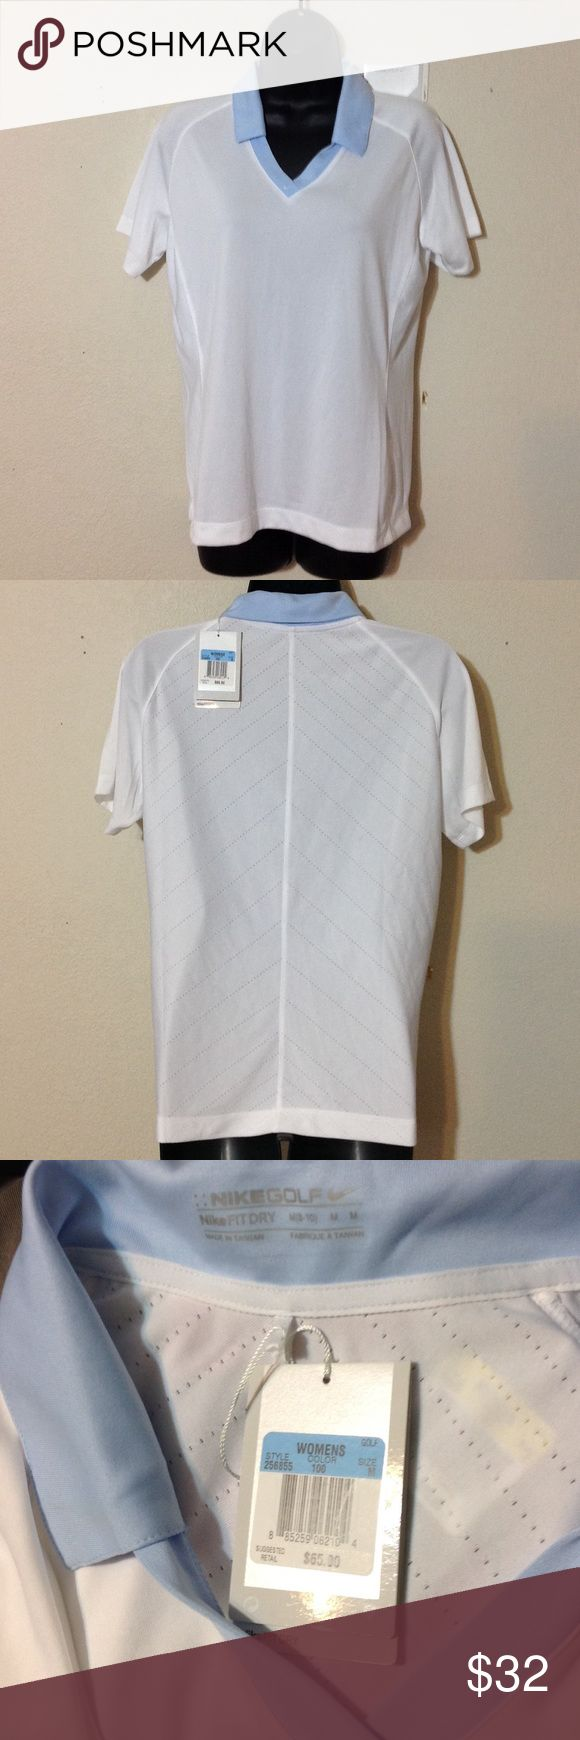 NikeGolf Dri-fit white with blue collar golf top NWT Nike FitDRY women's pullover golf polo, imagine yourself at the top of the tee box when you swing and hear that perfect ping, now imagine your follow thru swing with this shirt elegantly blowing in the wind off your confident stride Nike Tops